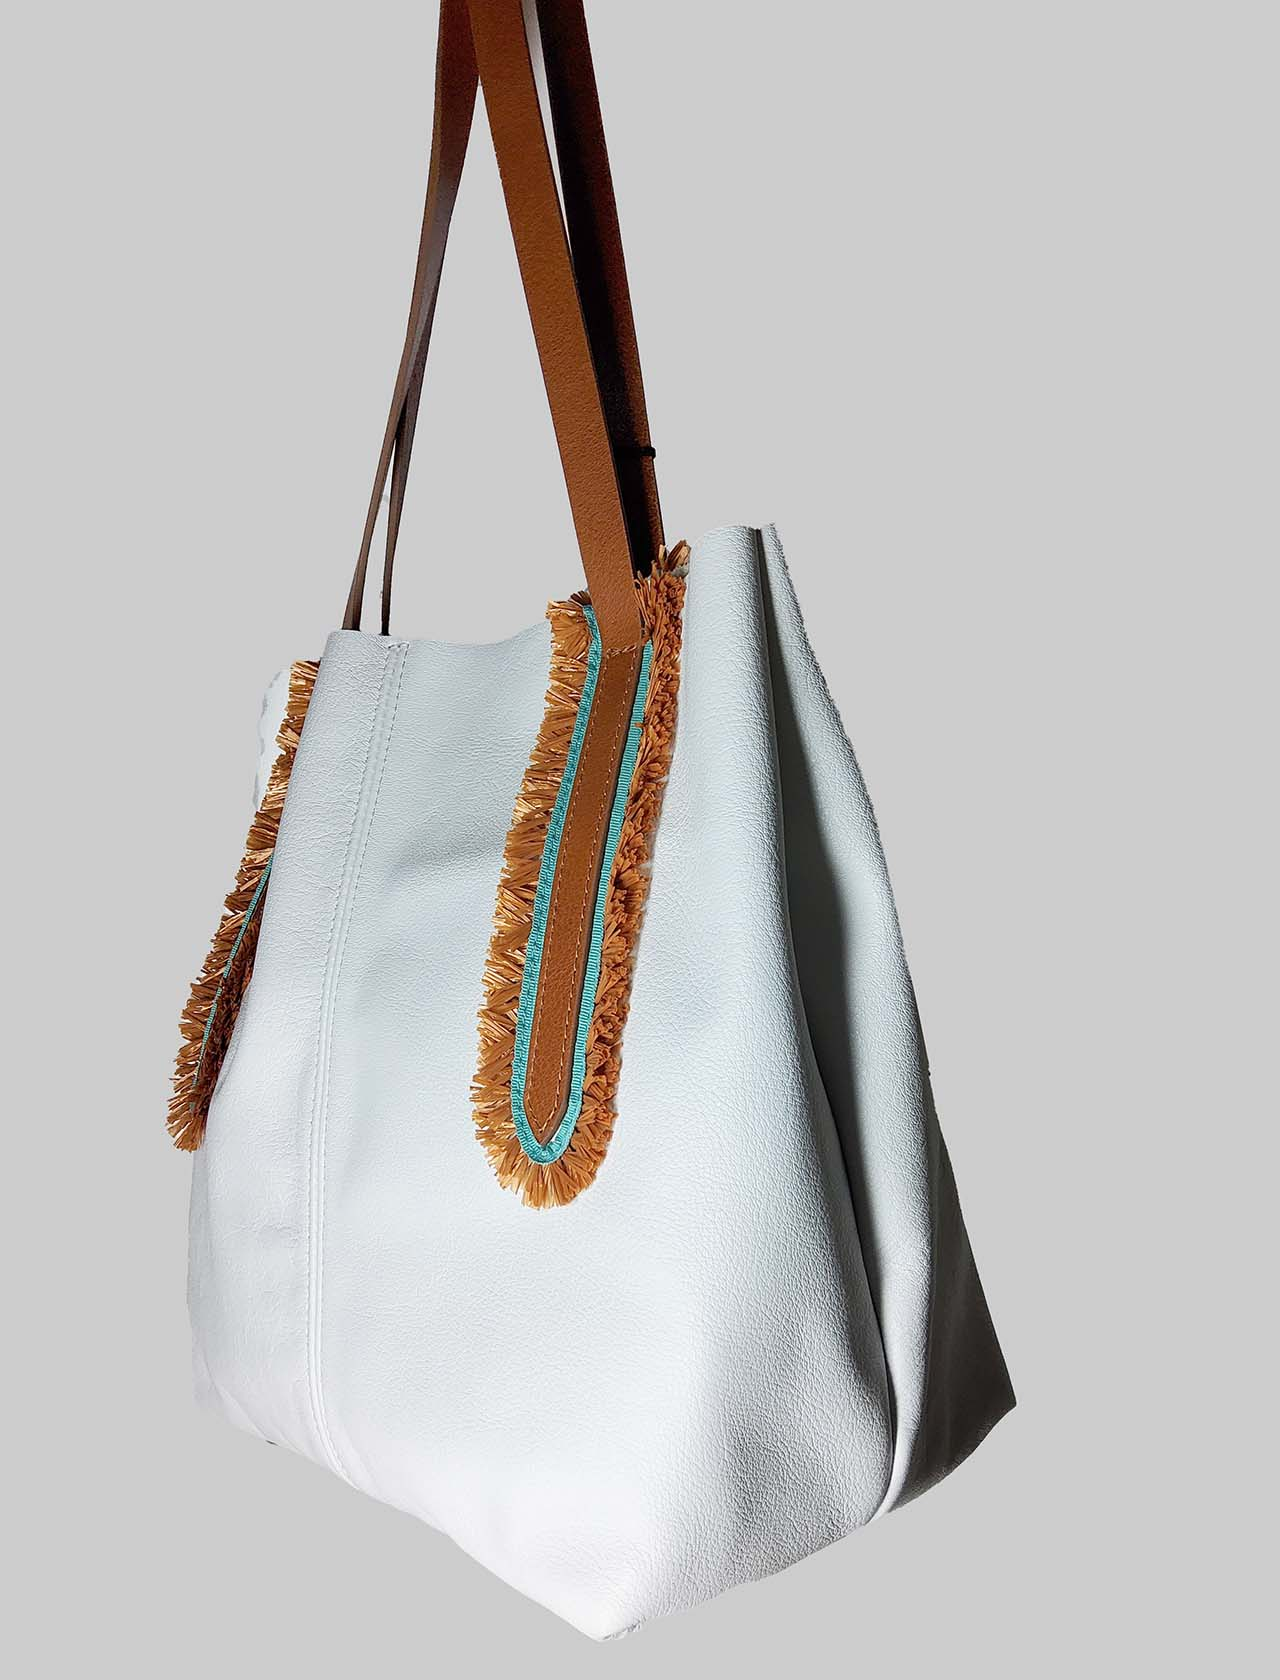 Woman Shoulder Bag in White Leather with Double Handles in Natural Leather Nanni Milano | Bags and backpacks | NMINI25100